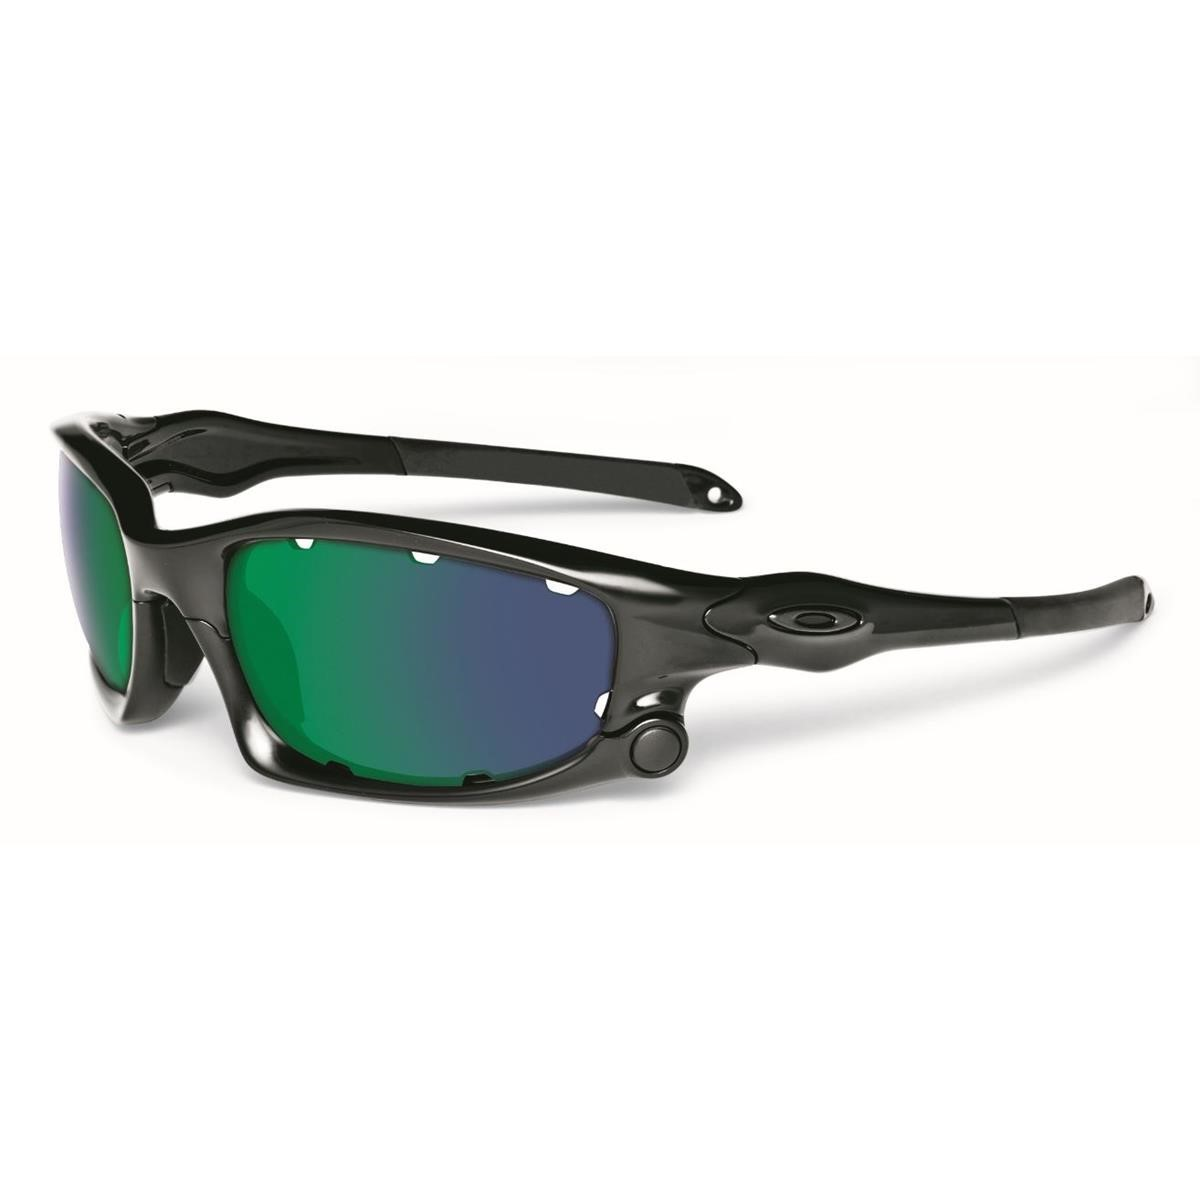 Oakley Sonnenbrille Split Jacket Polished Black/Jade Iridium Vented ;  Persimmon Vented | Maciag Offroad